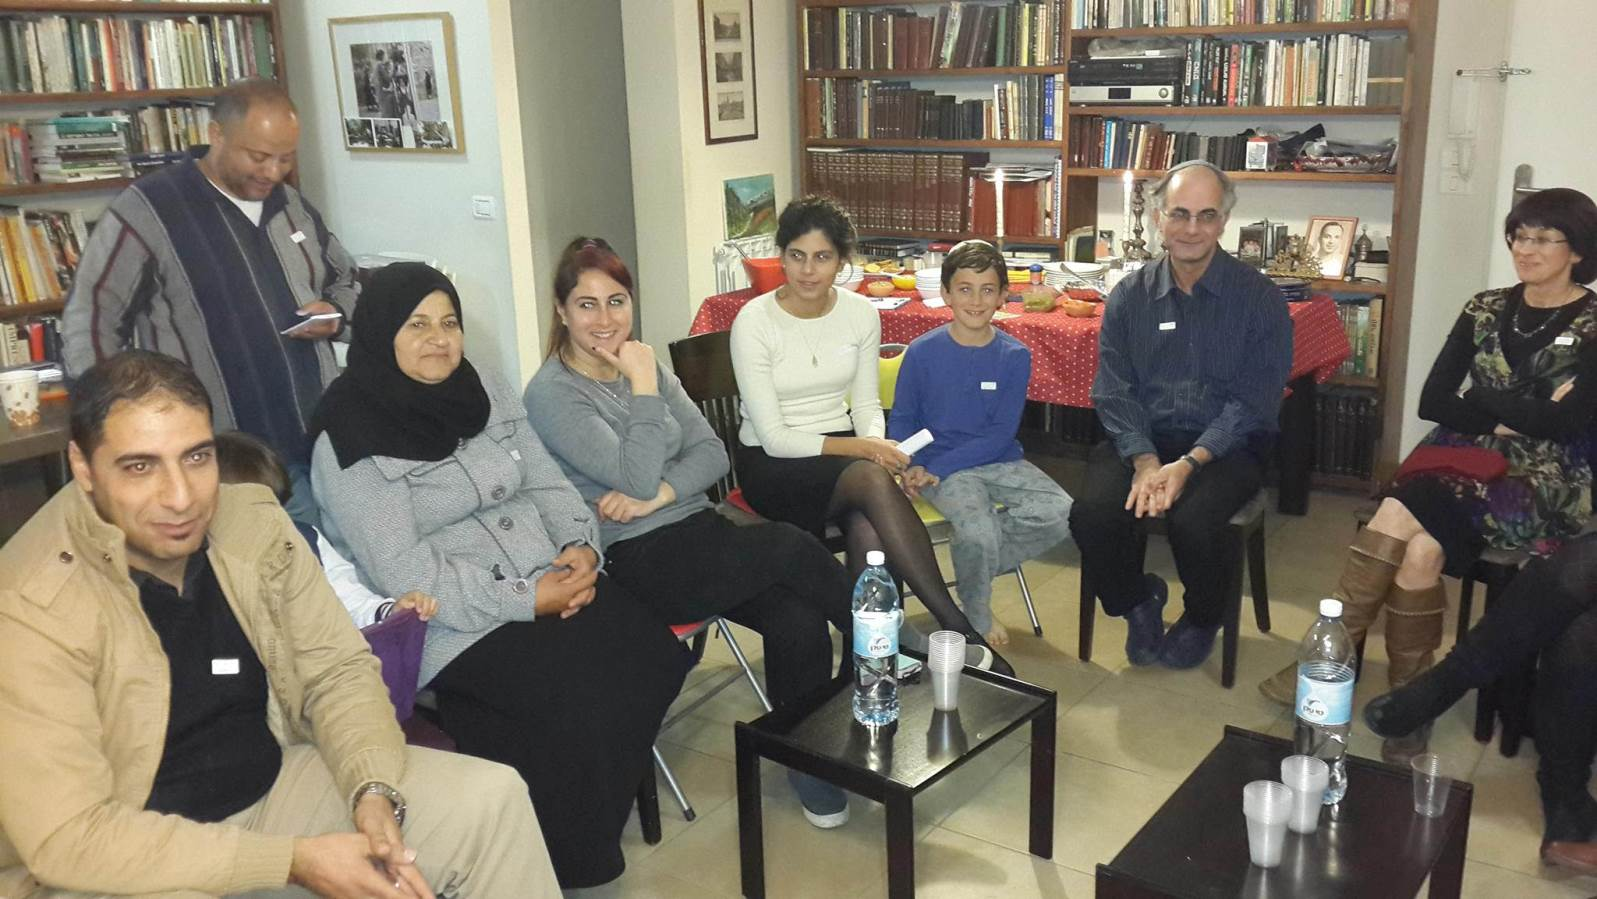 A recent meeting of the Interfaith Encounter Association. Yehuda Stolov is second from right. Photo: courtesy